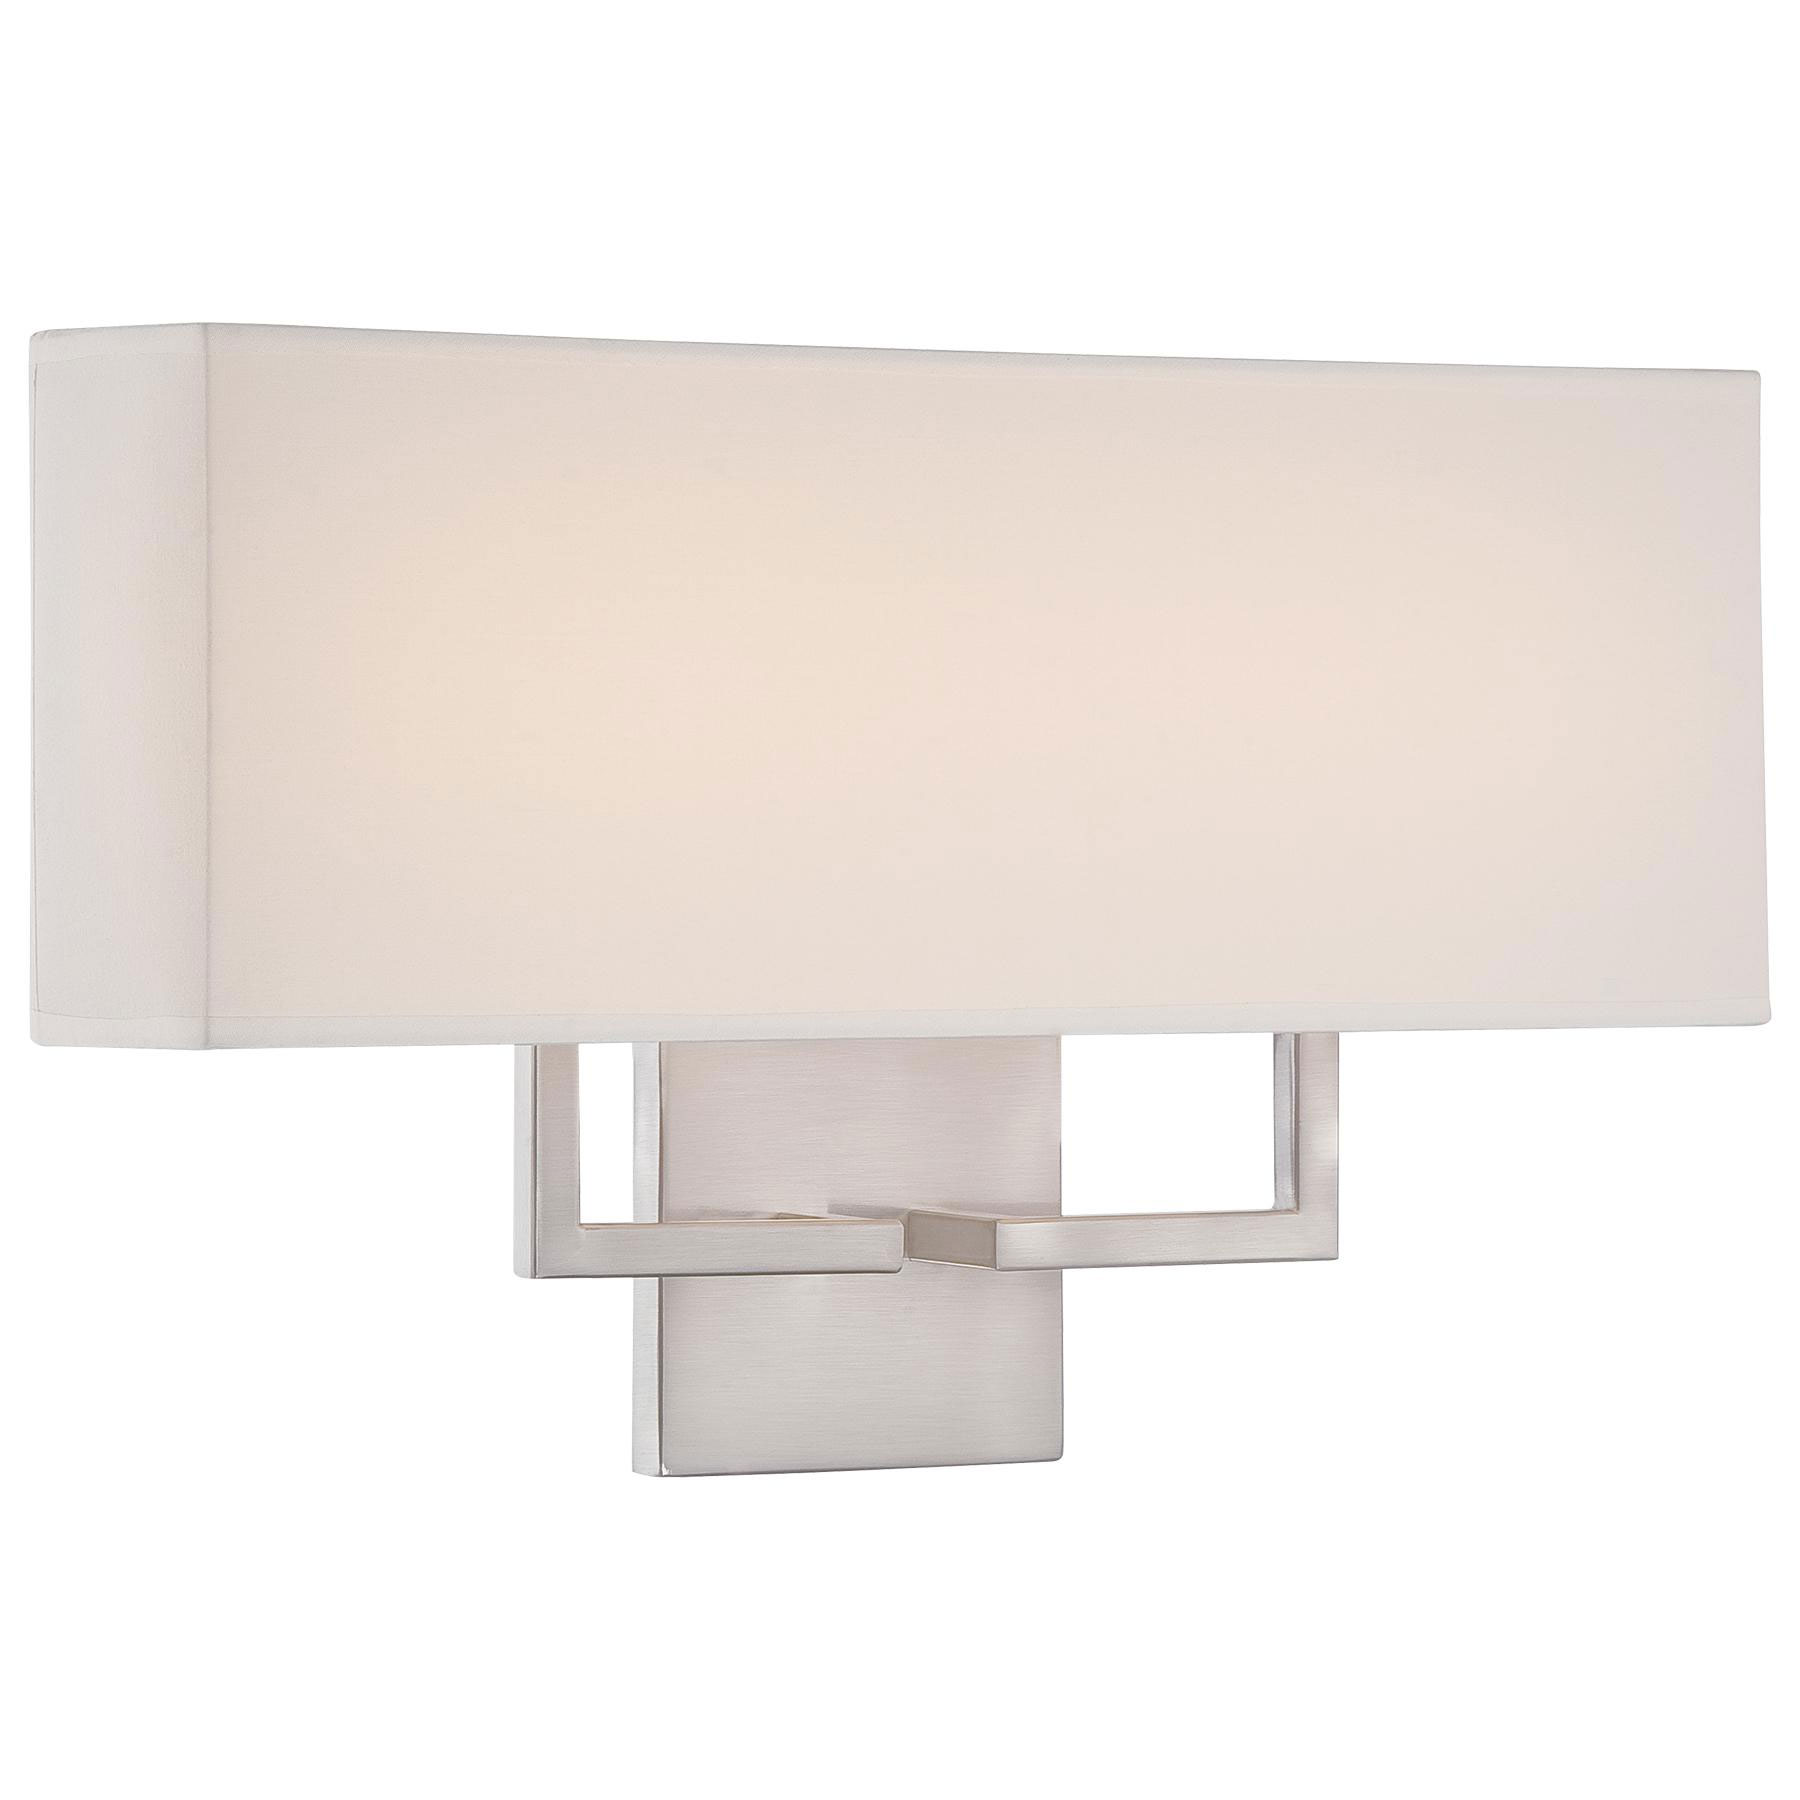 p472 led wall sconce by george kovacs p472084l